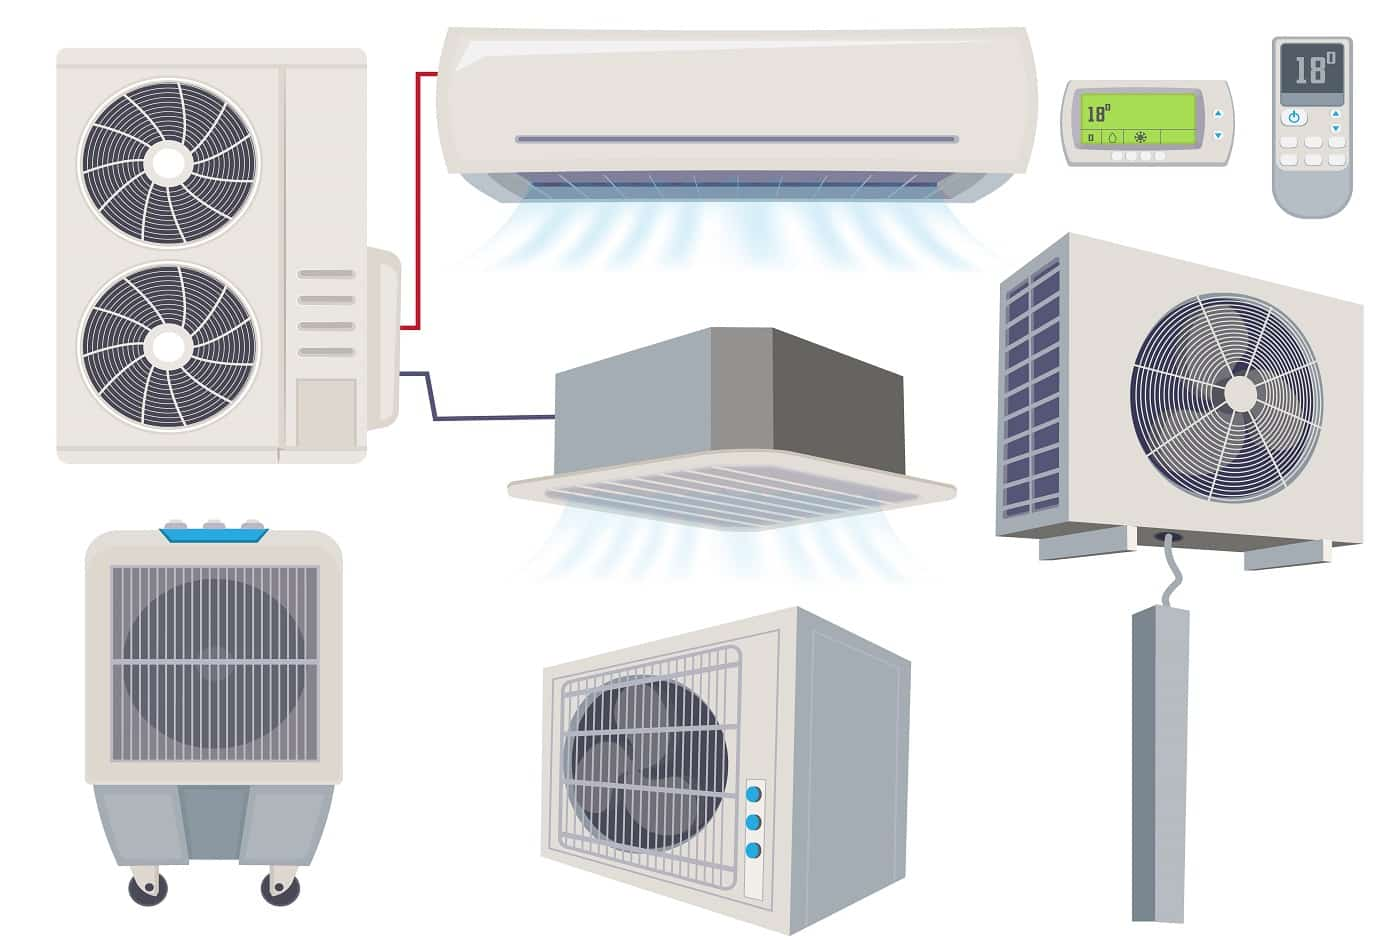 Blow filter. Air conditioner ventilation systems home wind tools vector cartoon illustration. Air system conditioning, airconditioner ventilation